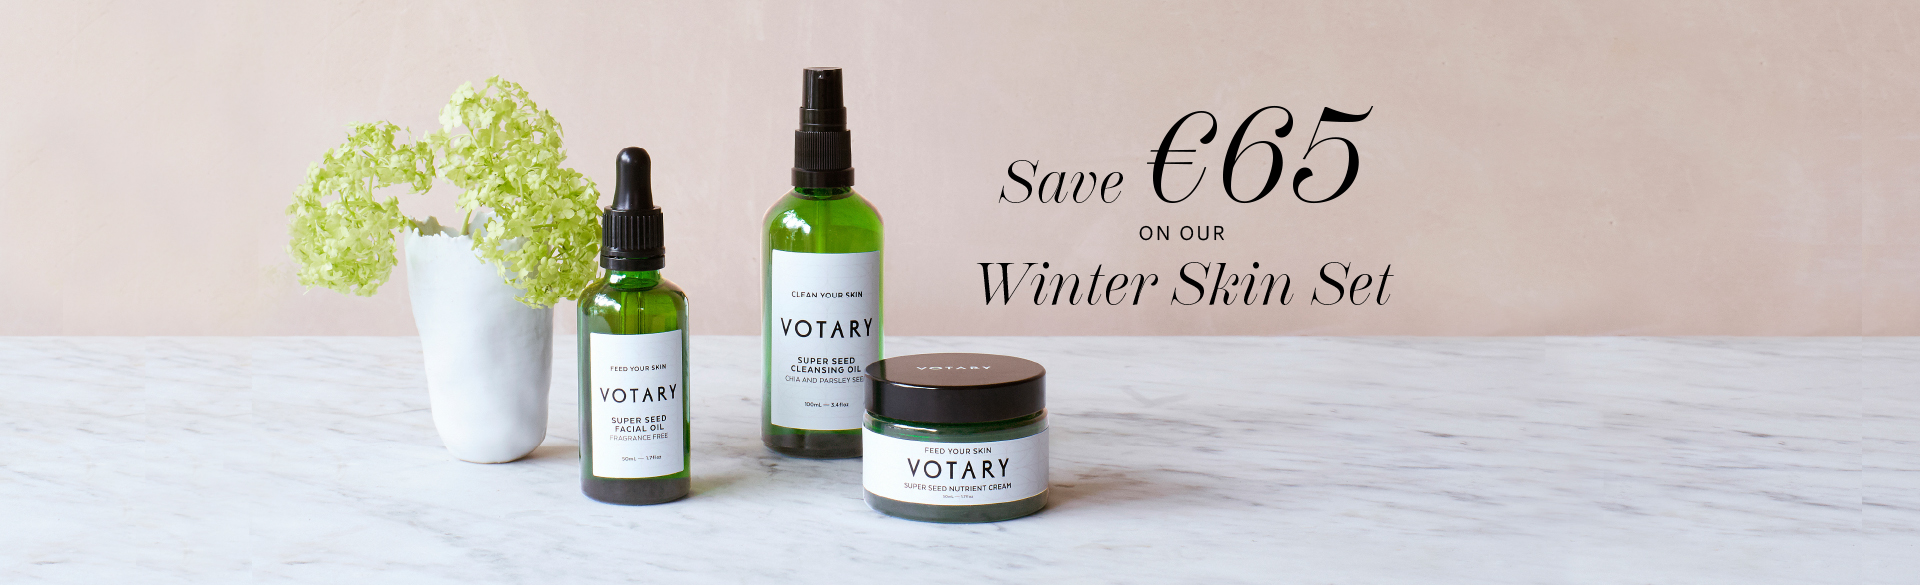 Save €65 on our Winter Skin Set